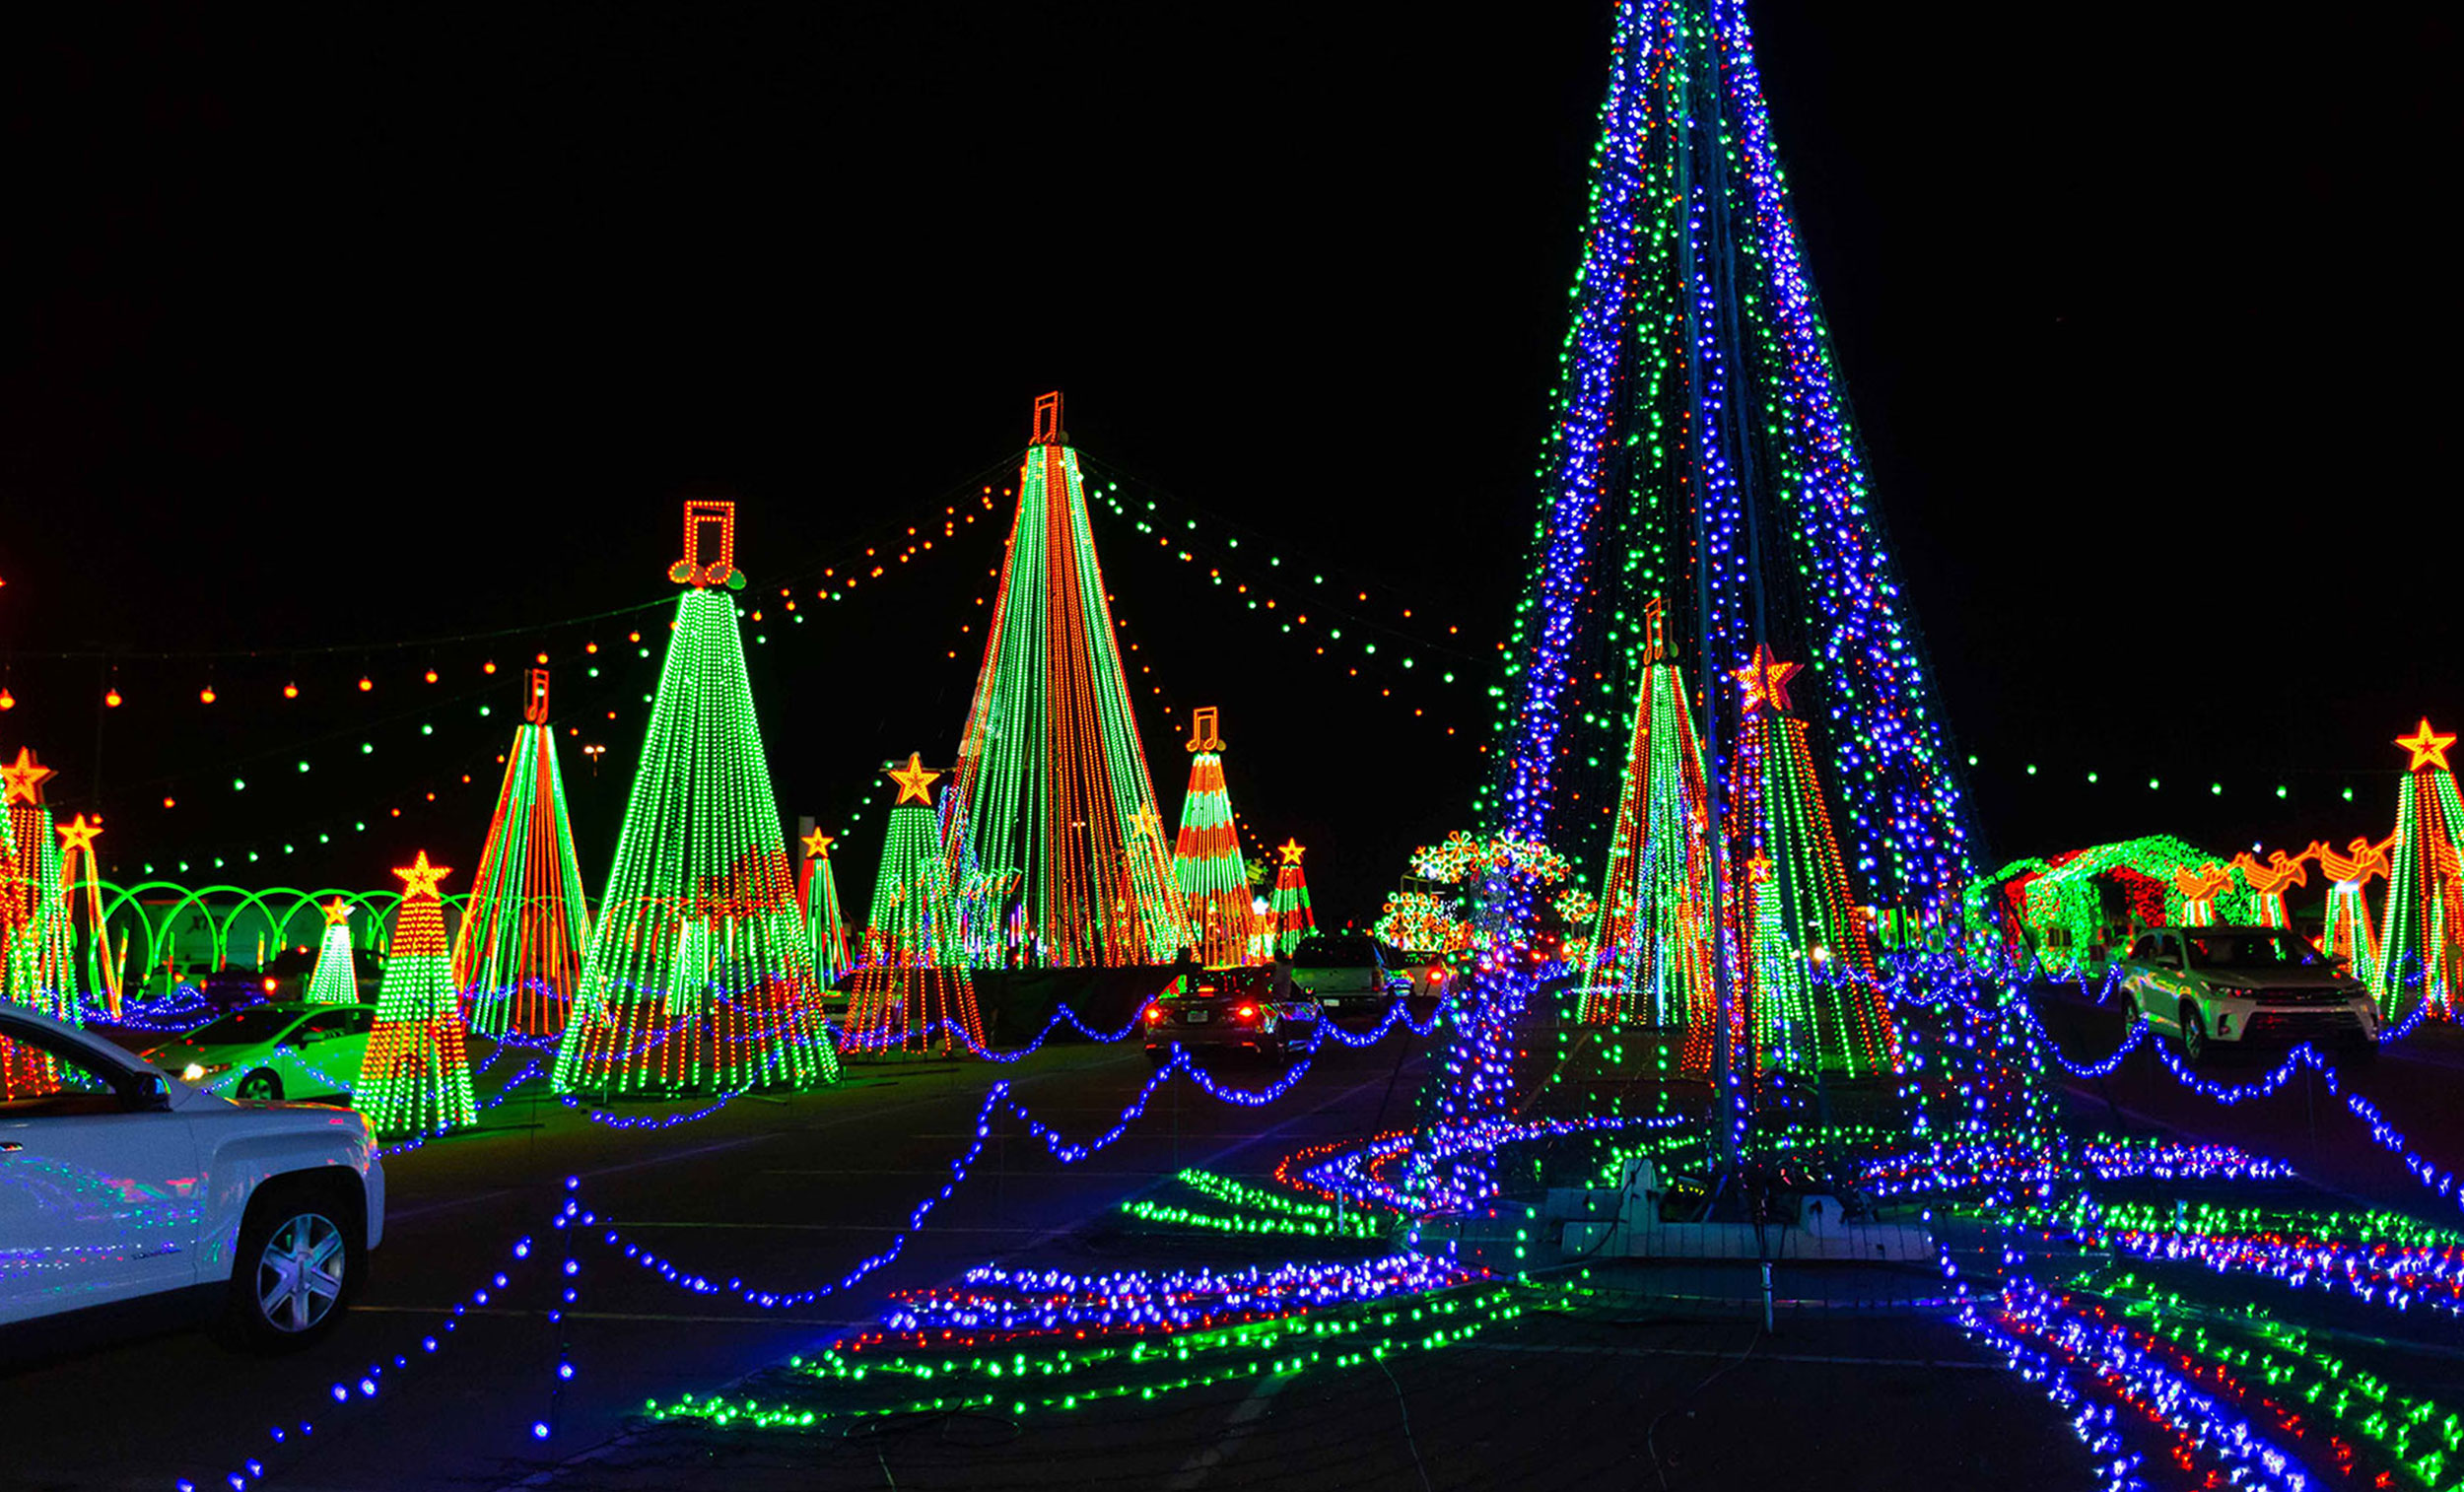 2020 Mountain Country Christmas In Lights, December 20 10 Holiday Light Displays in Georgia (updated 2020)